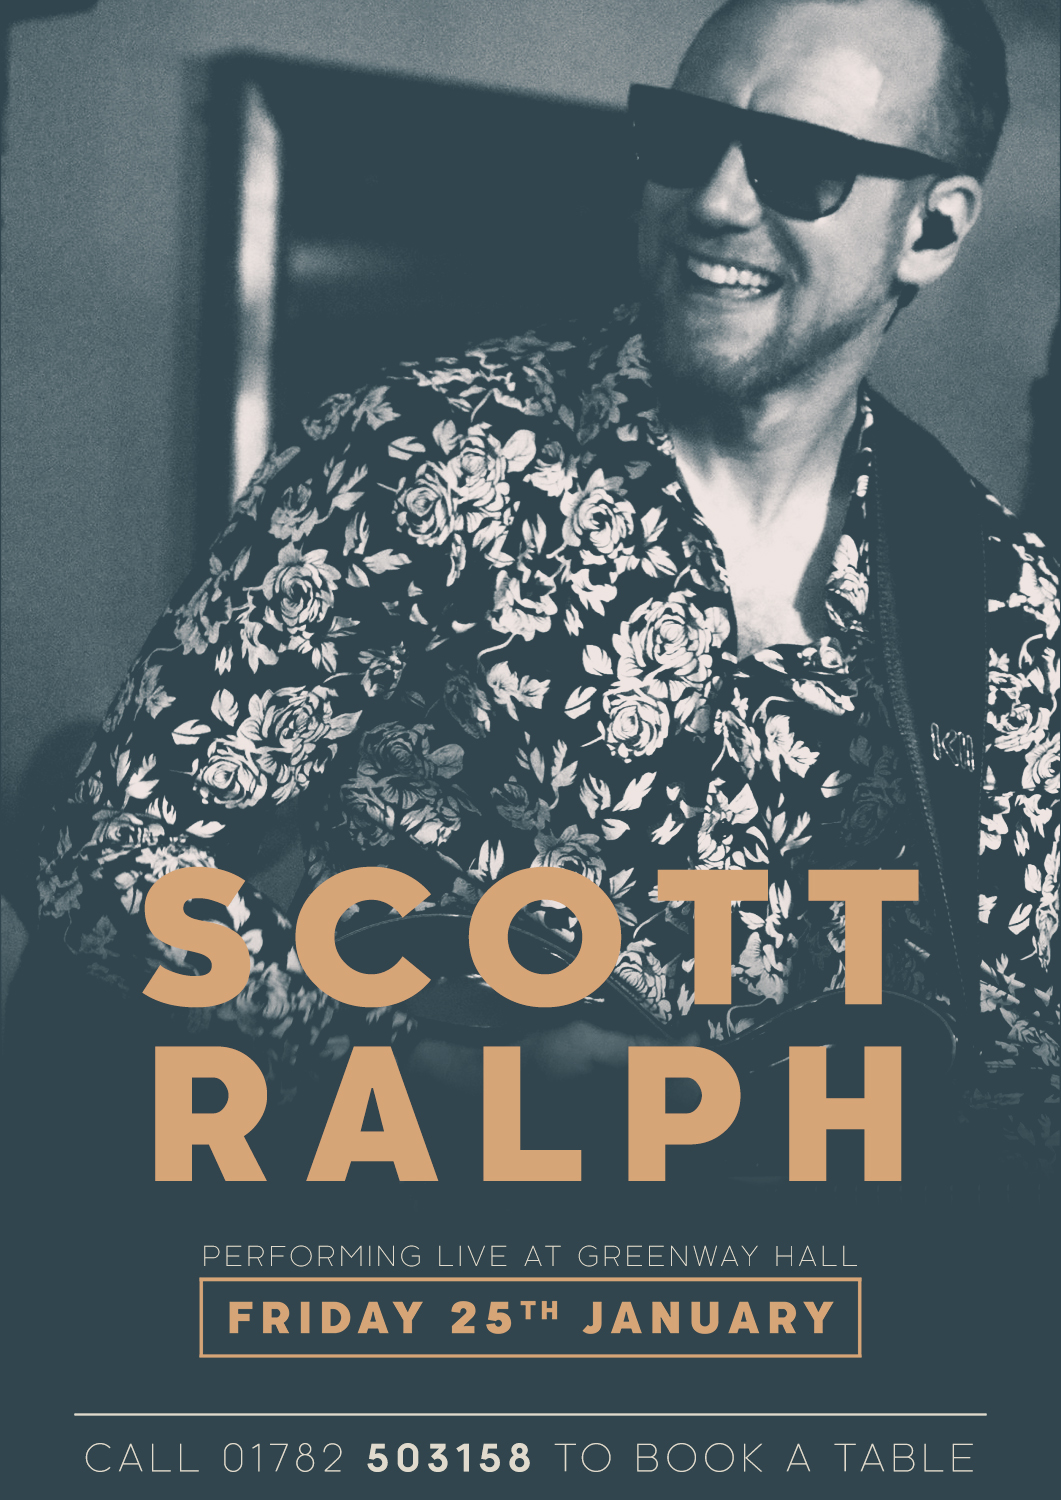 Come and see Scott Ralph perform live at Greenway Hall on Friday 25th January 2019.